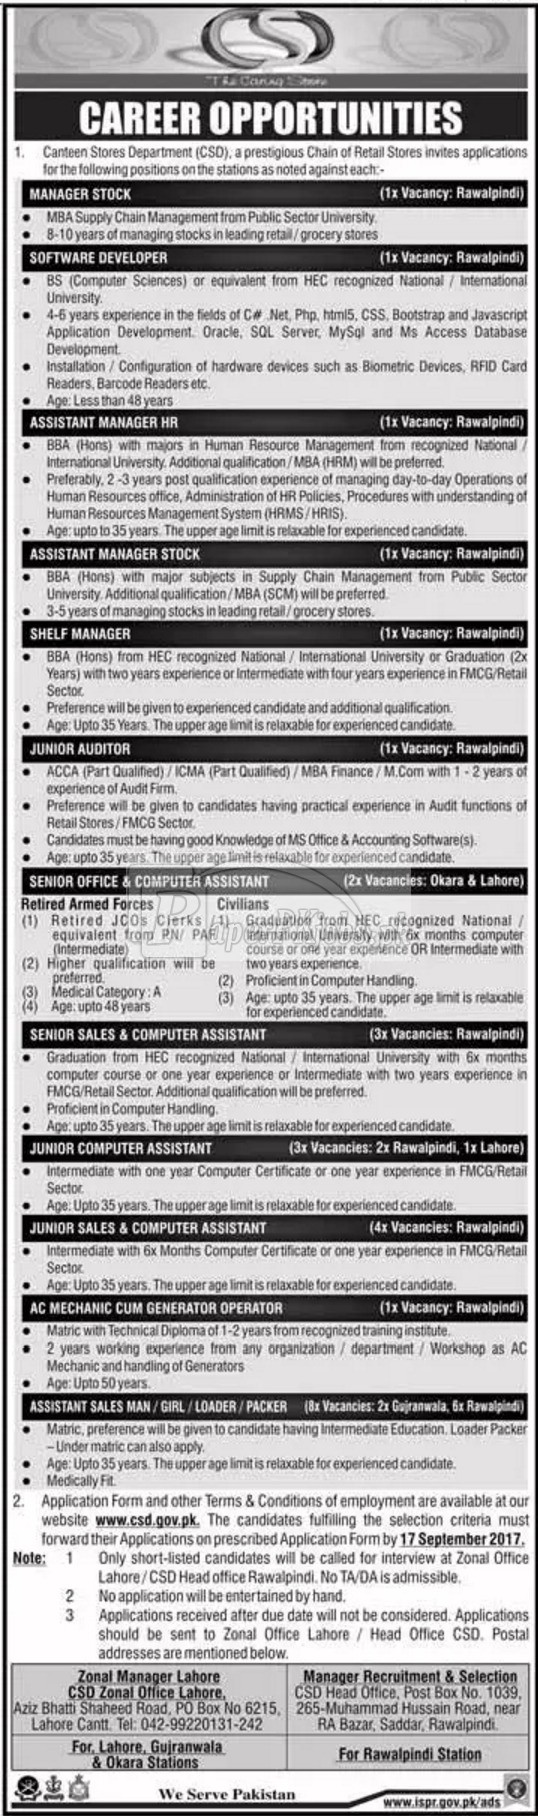 Canteen Stores Department CSD Jobs 2017